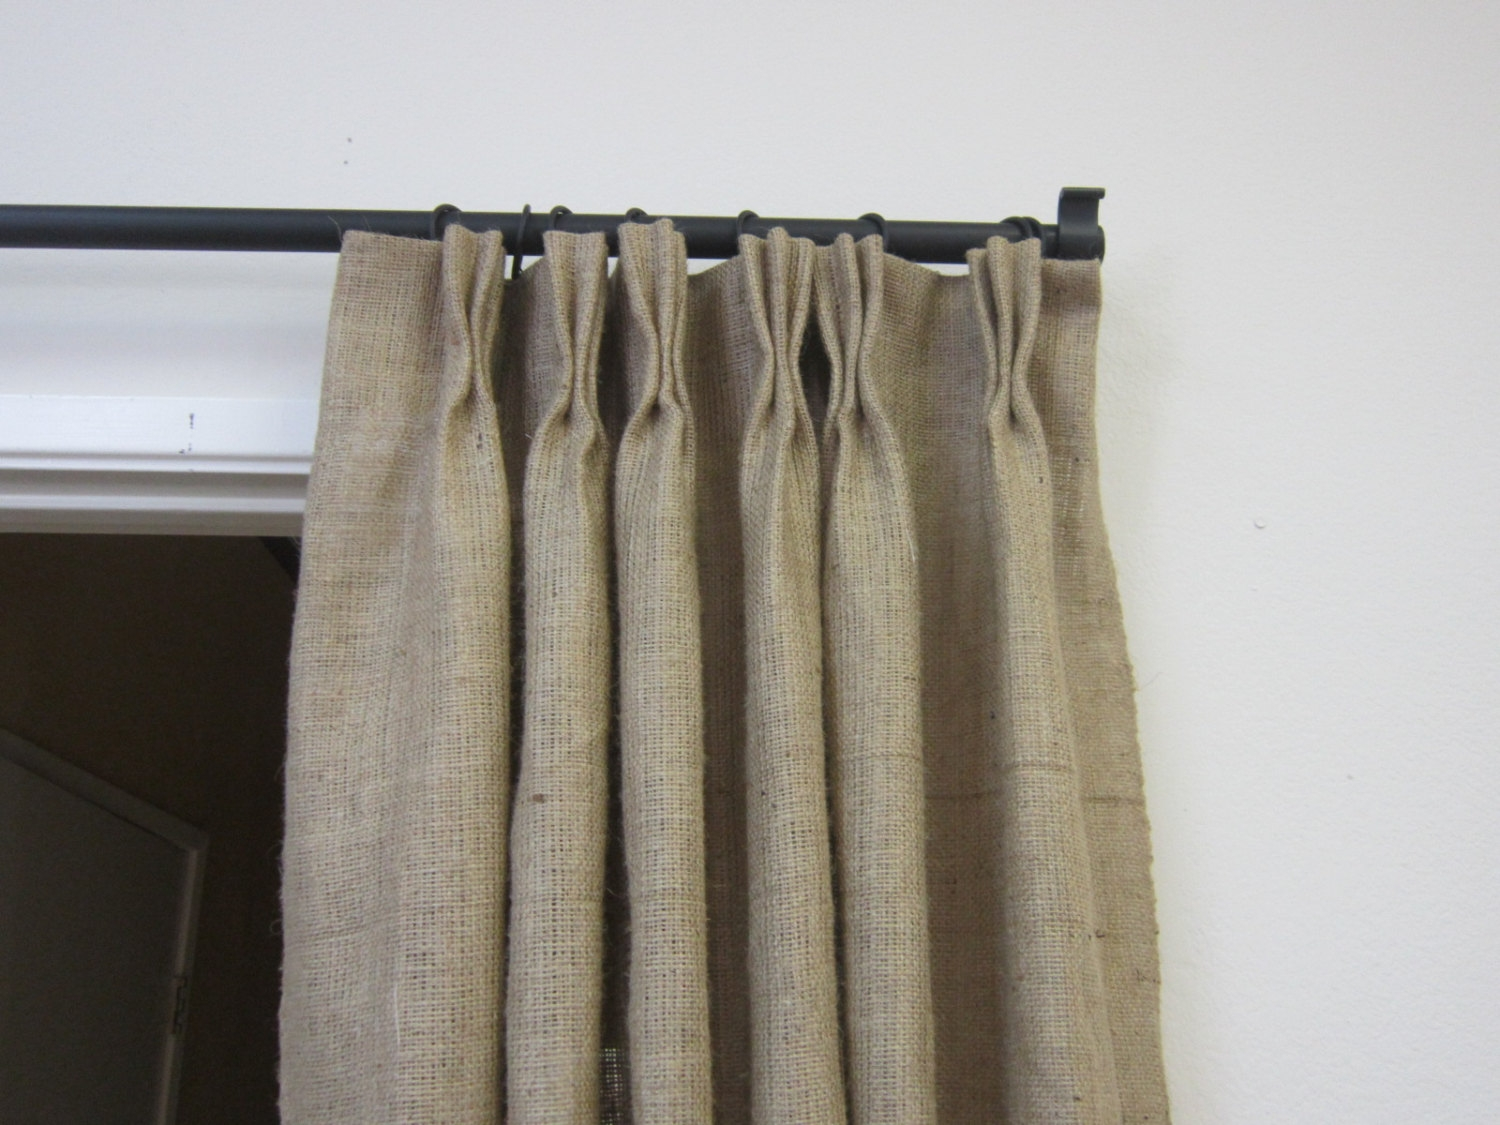 Pinch Pleat Drapes Etsy Inside Curtains Pleated Style (Image 14 of 15)